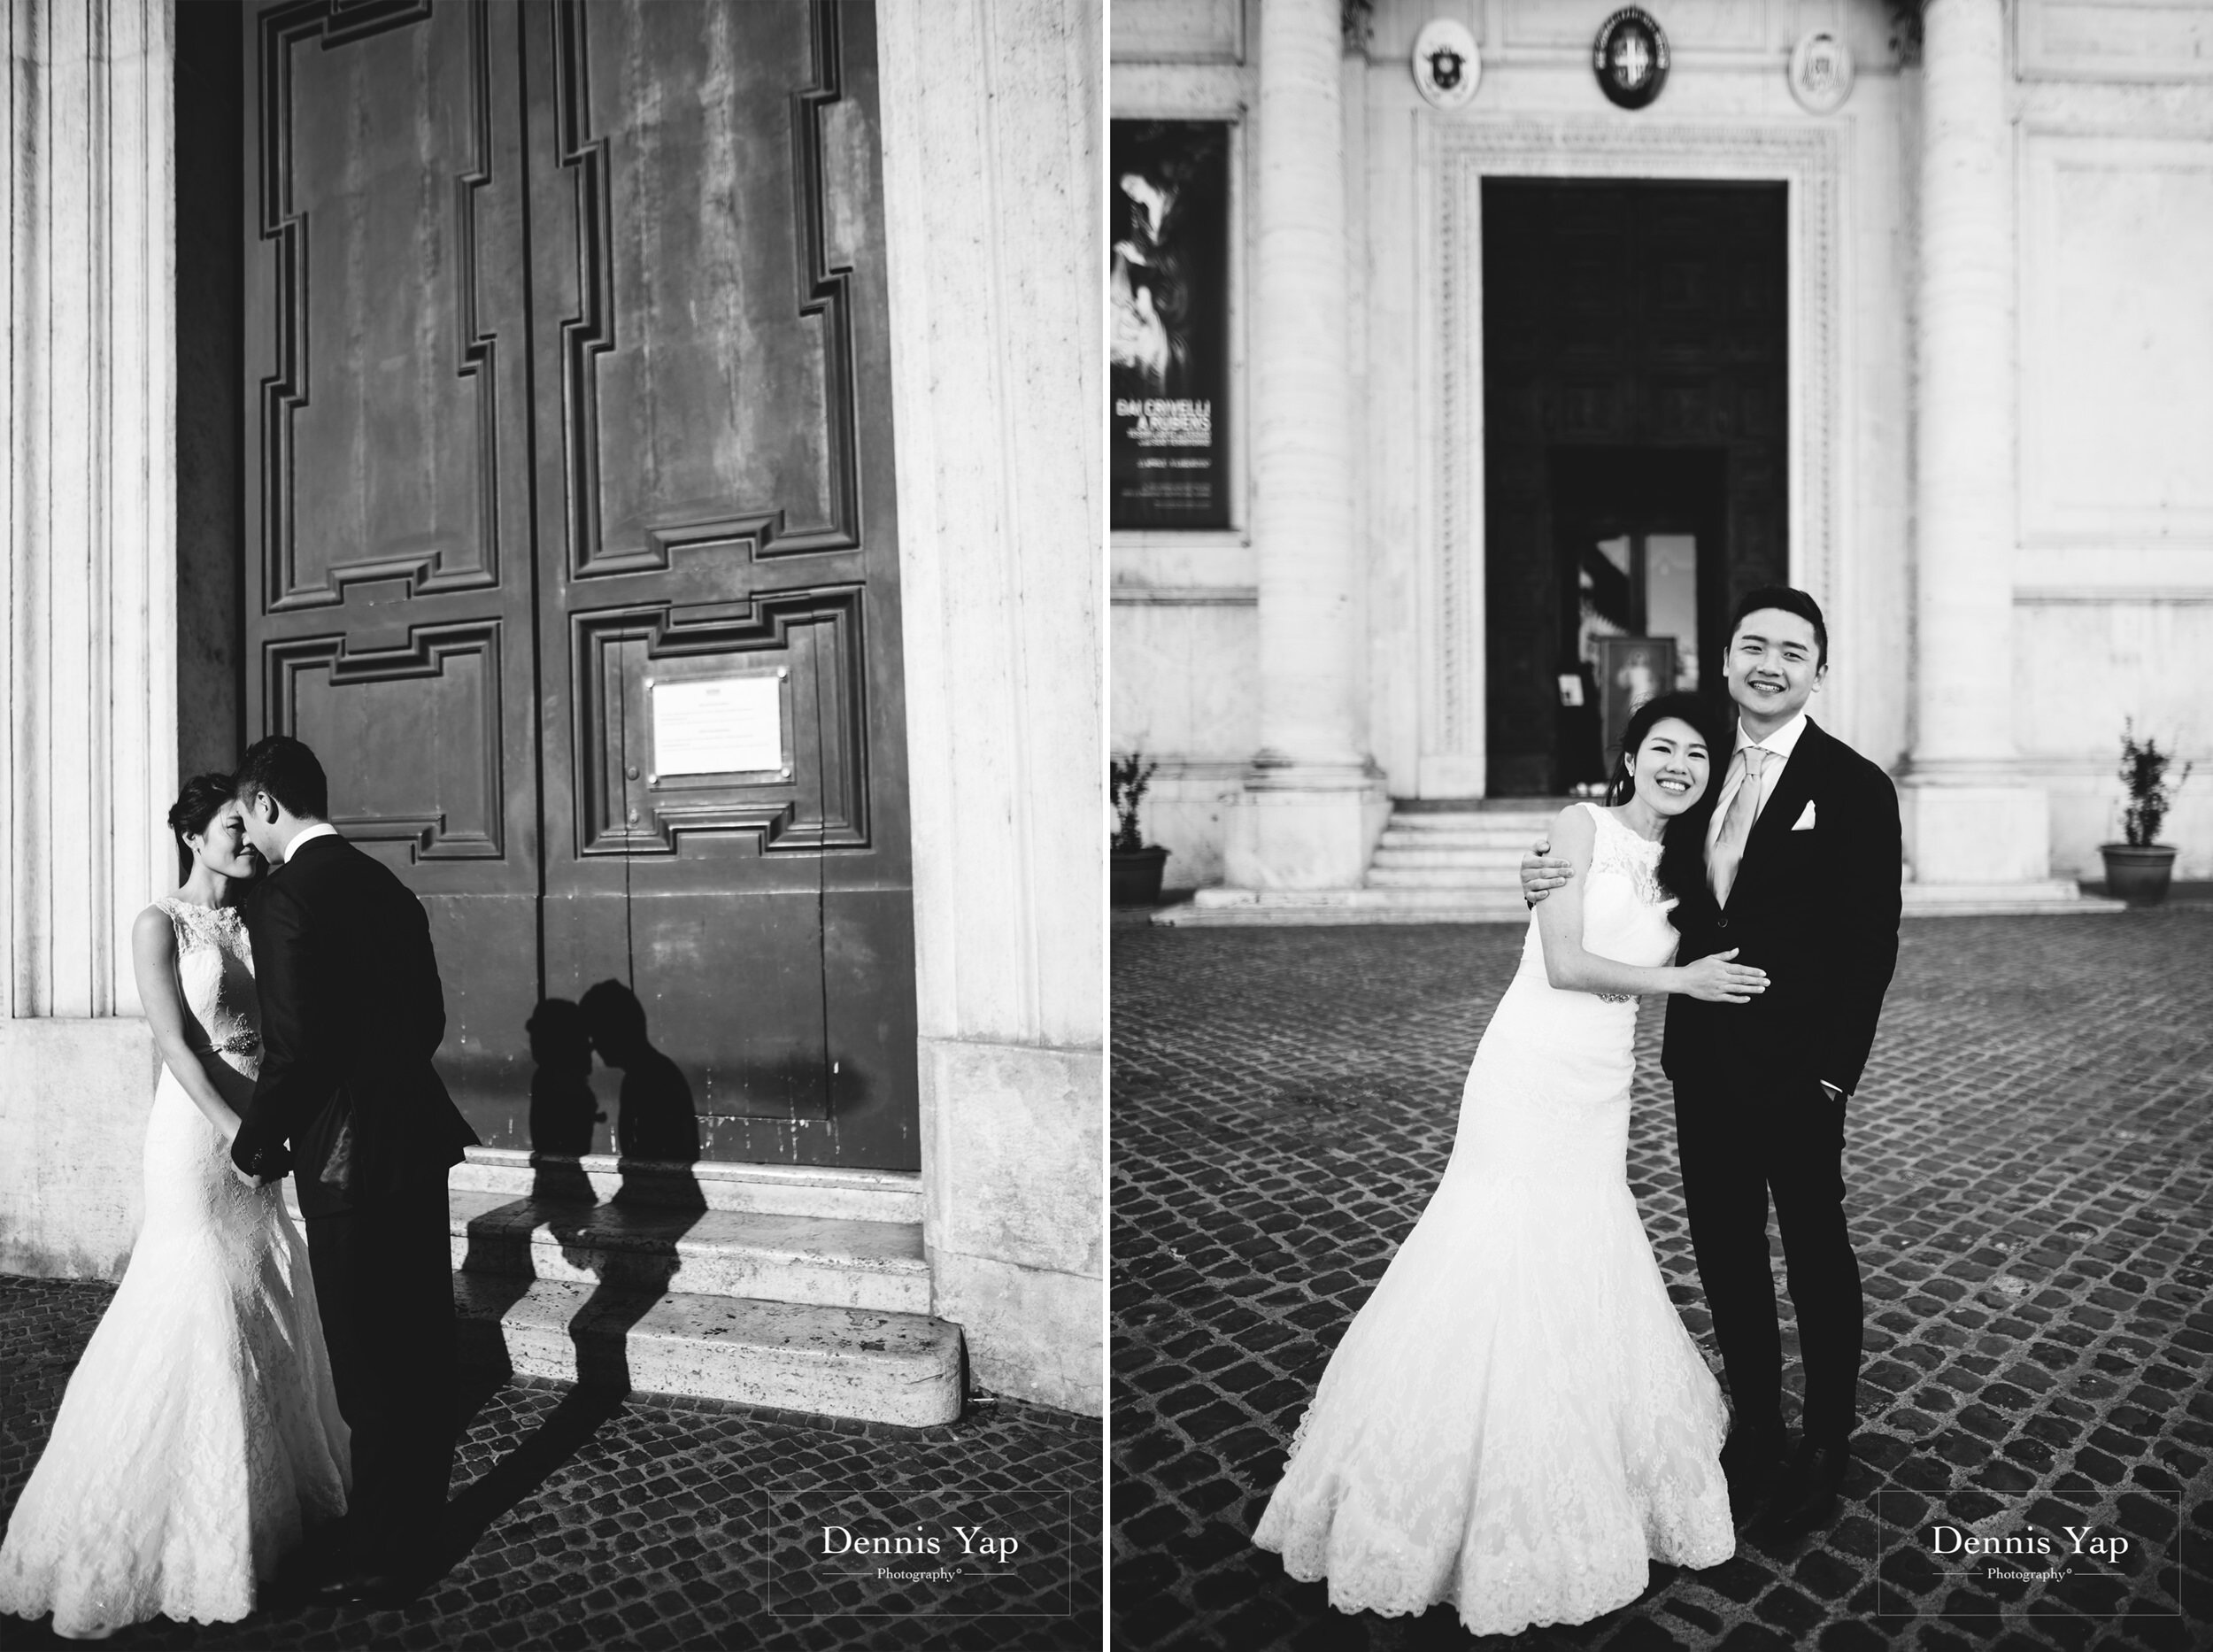 alex chloe pre wedding rome italy dennis yap photography overseas portrait classic beloved-121.jpg